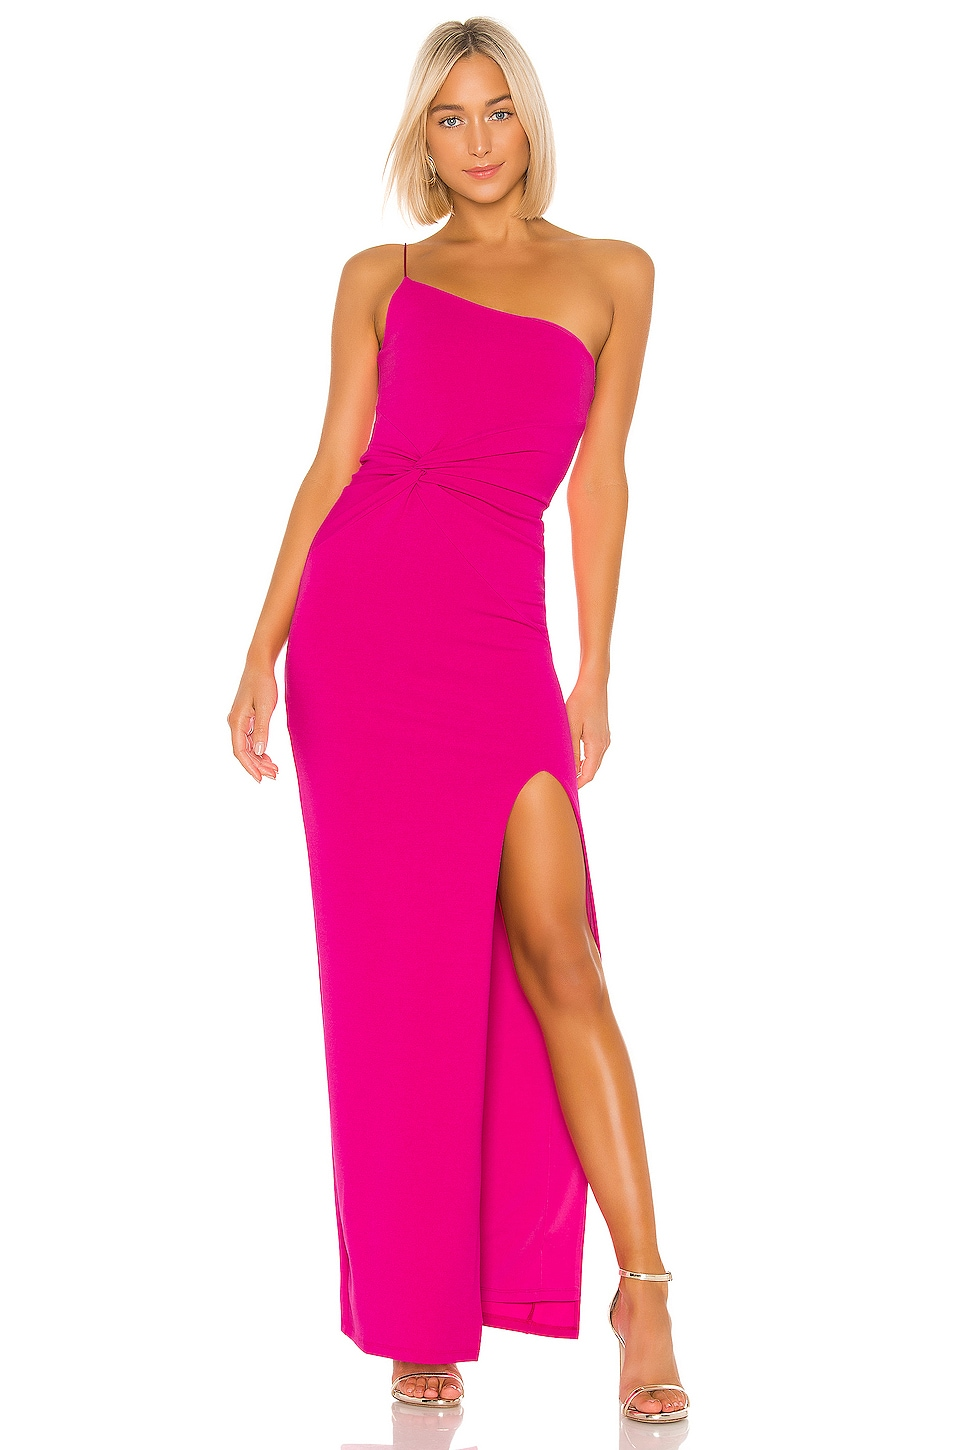 Nookie Lust One Shoulder Gown in Neon Pink